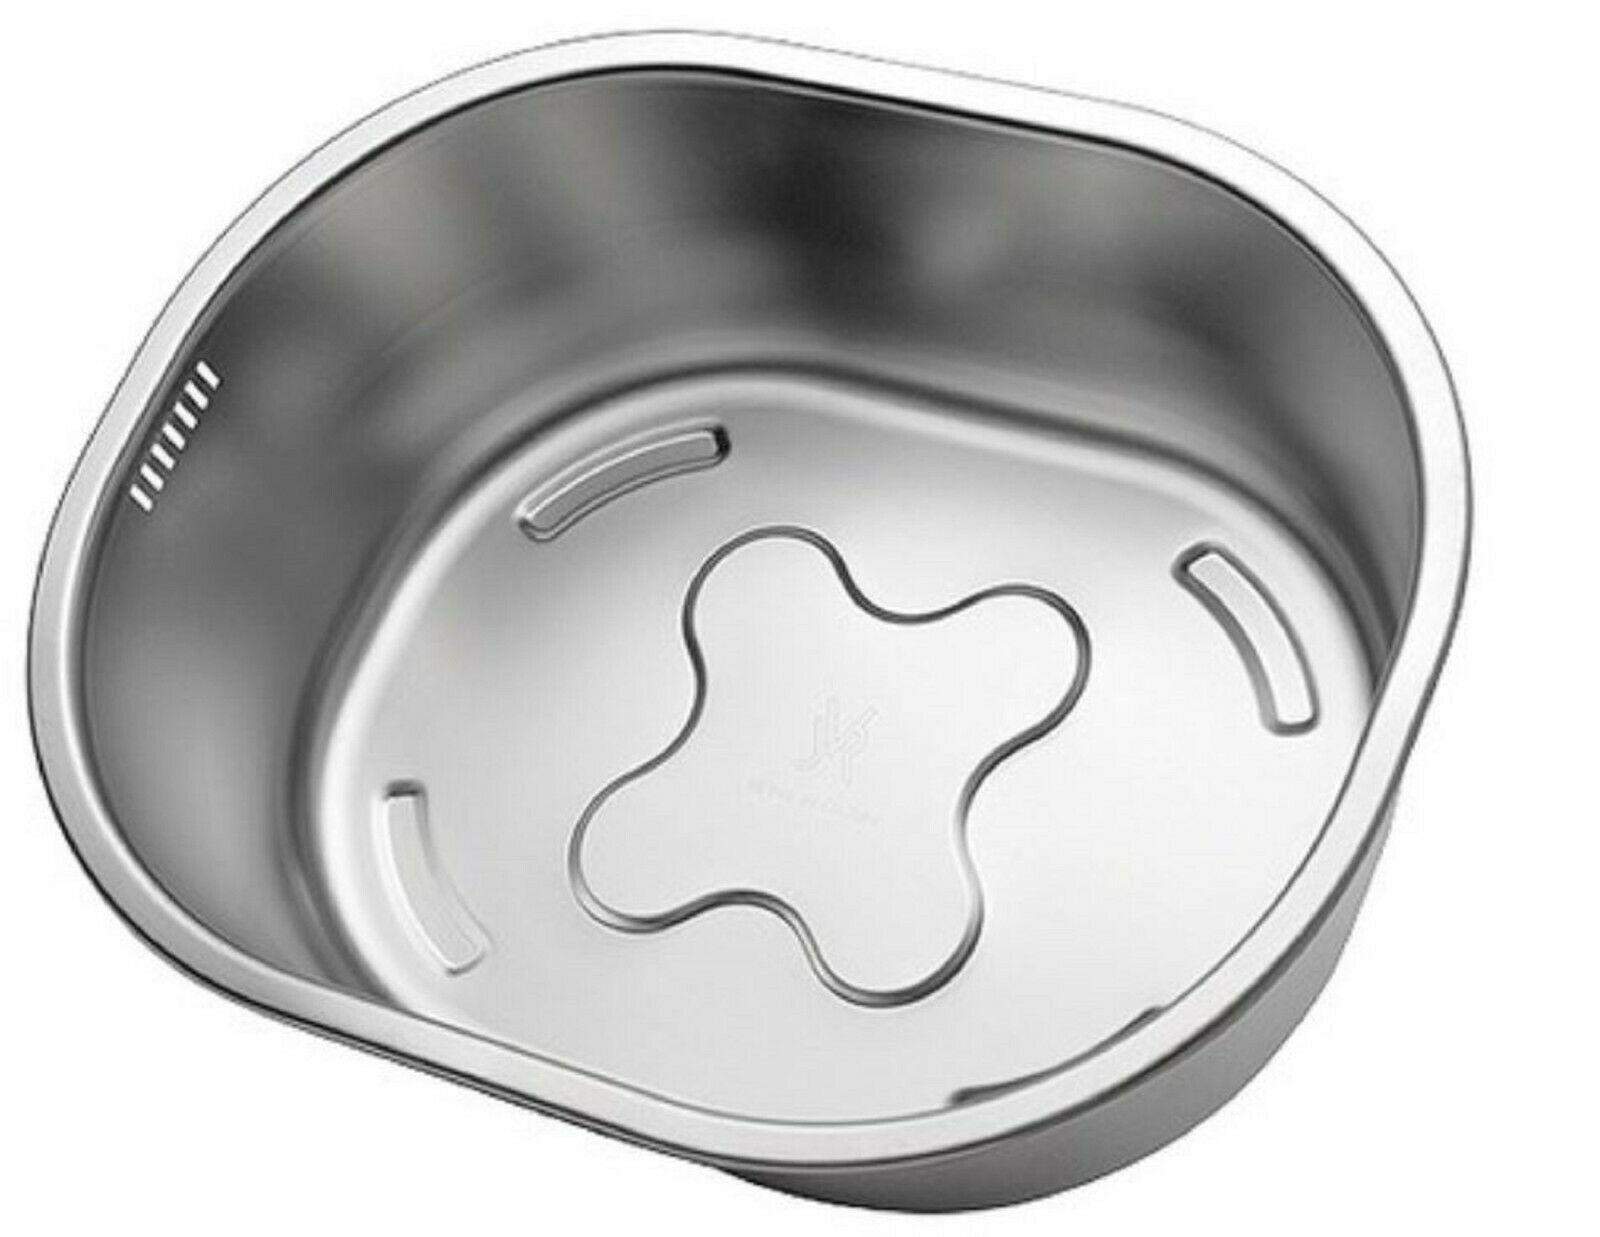 Incroma Stainless Steel Dishpan Basin Dish Washing Bowl Bucket Basket Tub